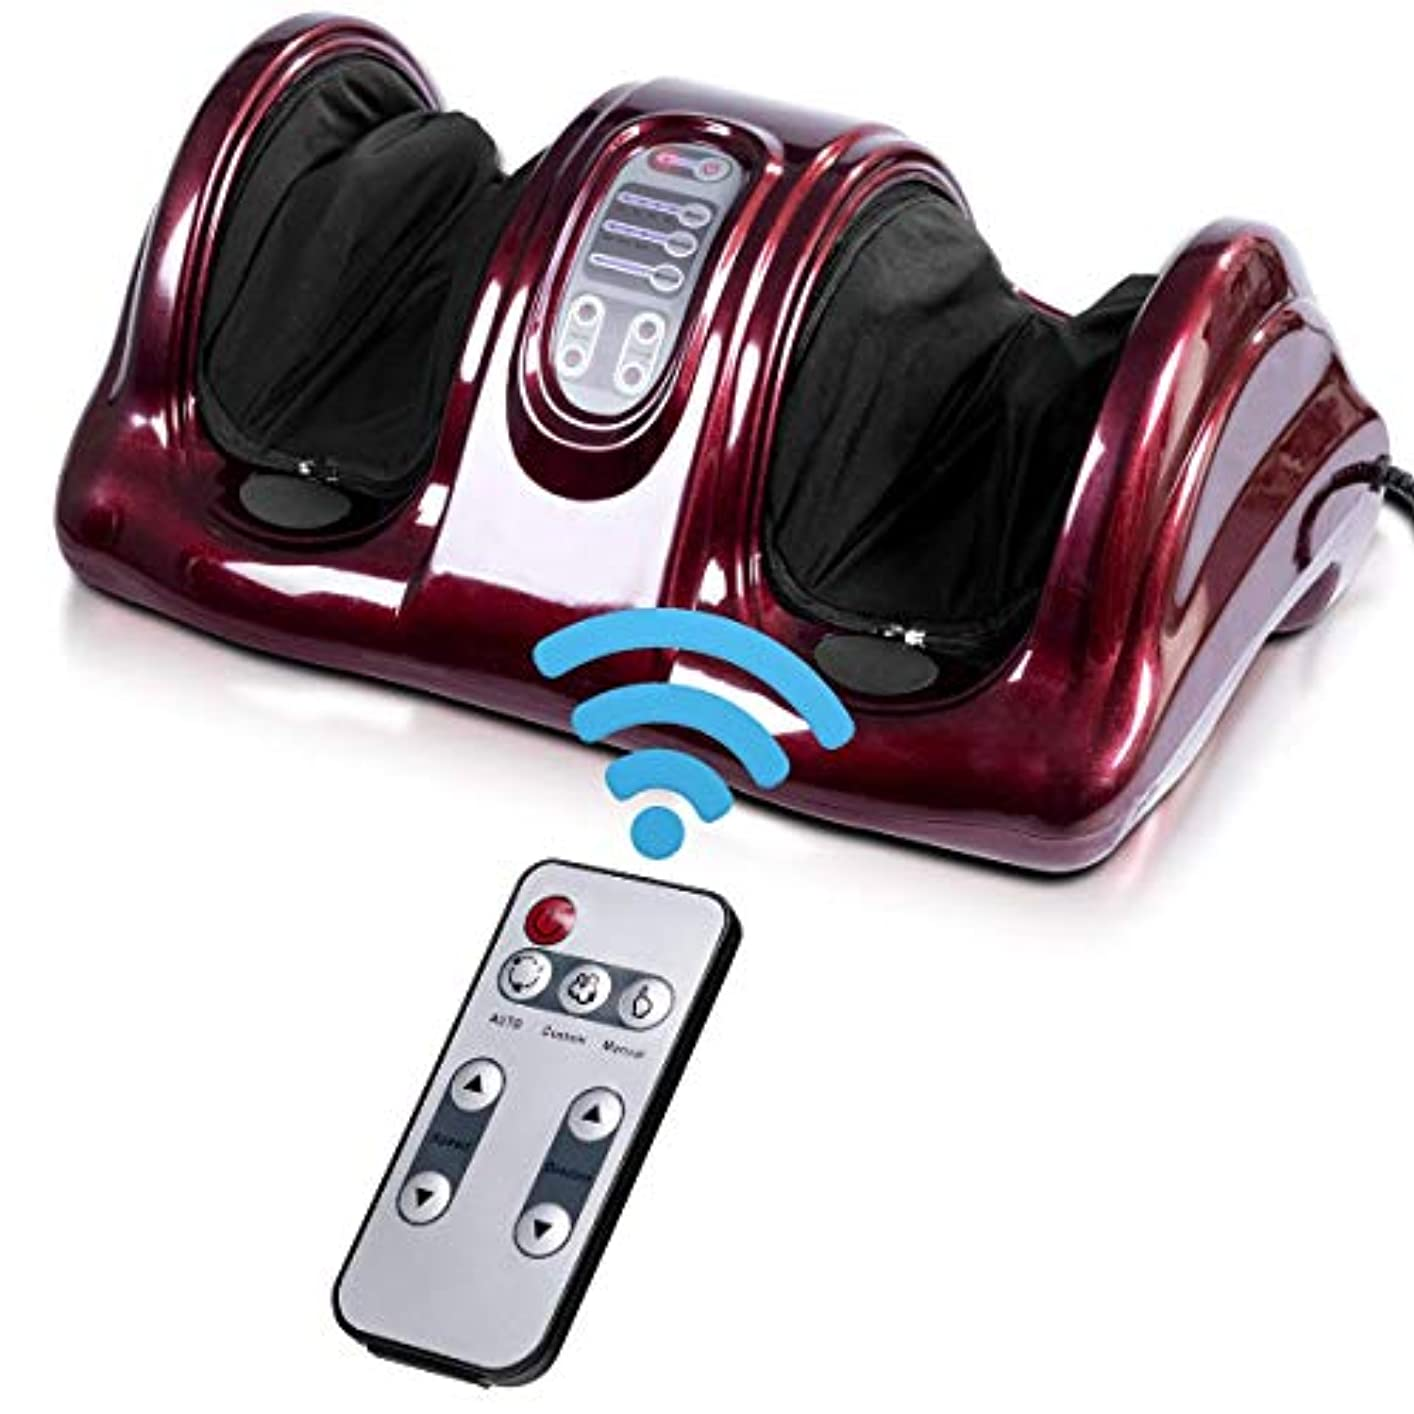 の間でアルミニウム宇宙飛行士[Giantex][Giantex Foot Massager Machine Massage for Feet, Chronic Nerve Pain Therapy Spa Gift Deep Kneading Rolling Massage for Leg Calf Ankle, Electric Shiatsu Foot Massager w/ Remote, Burgundy](Parallel Imported Goods) (Burgundy)